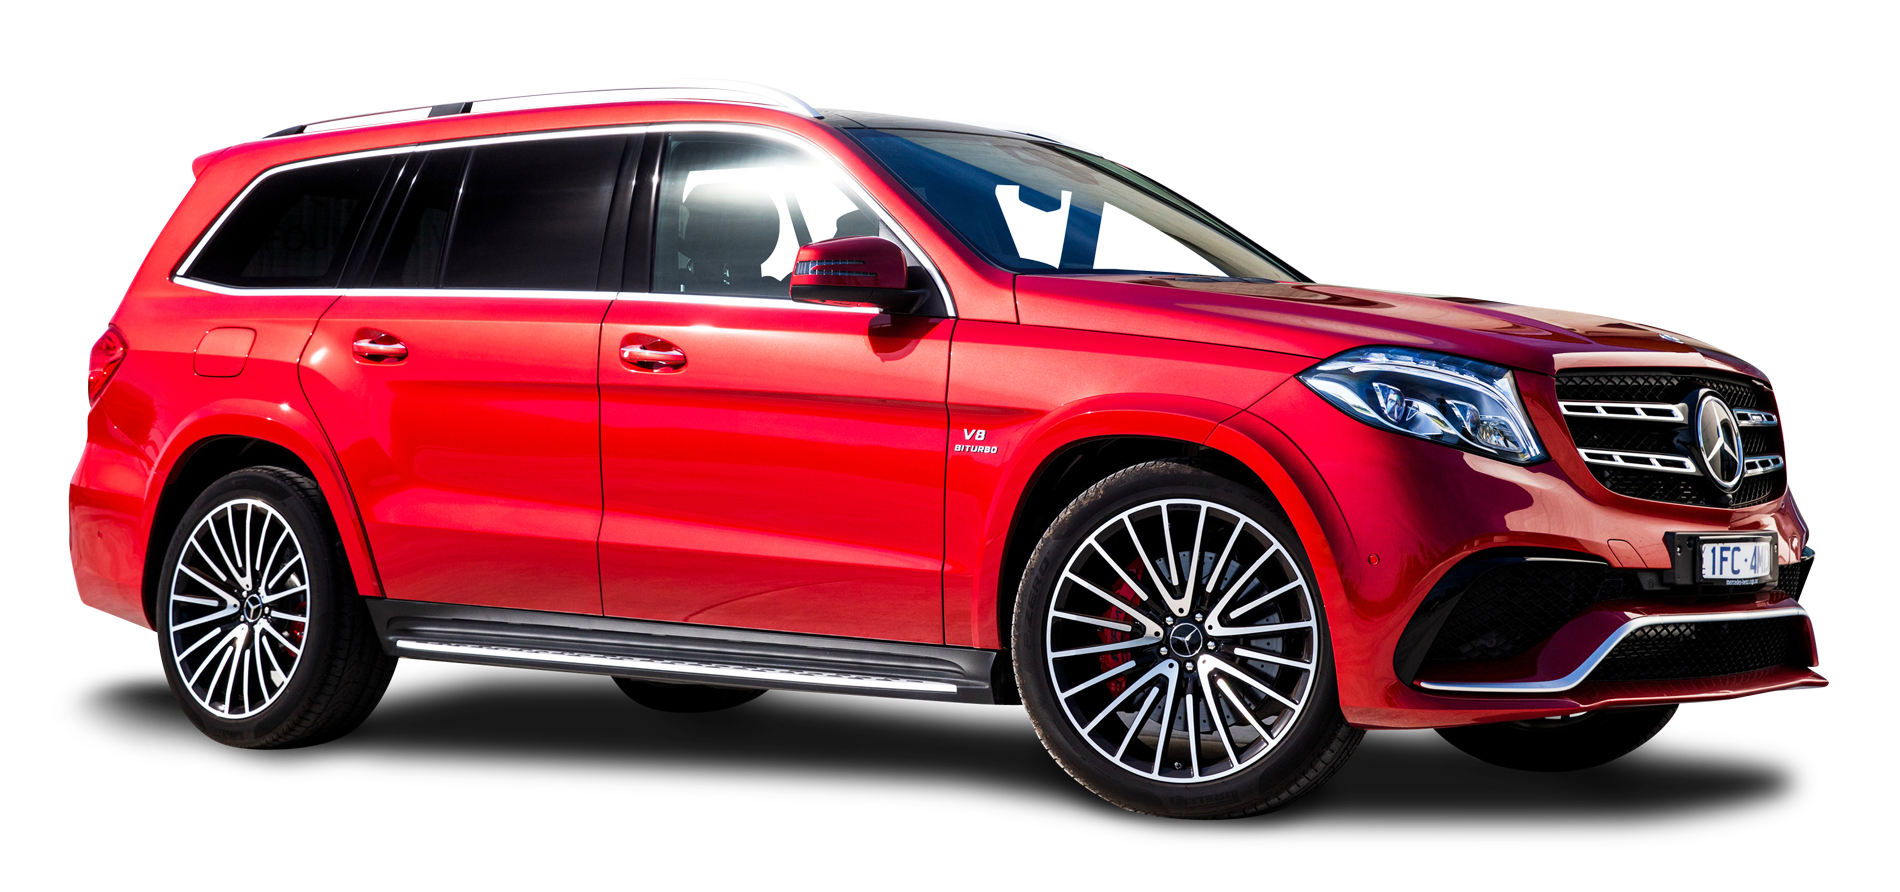 Red mercedes benz gls class car png image pngpix for Mercedes benz red